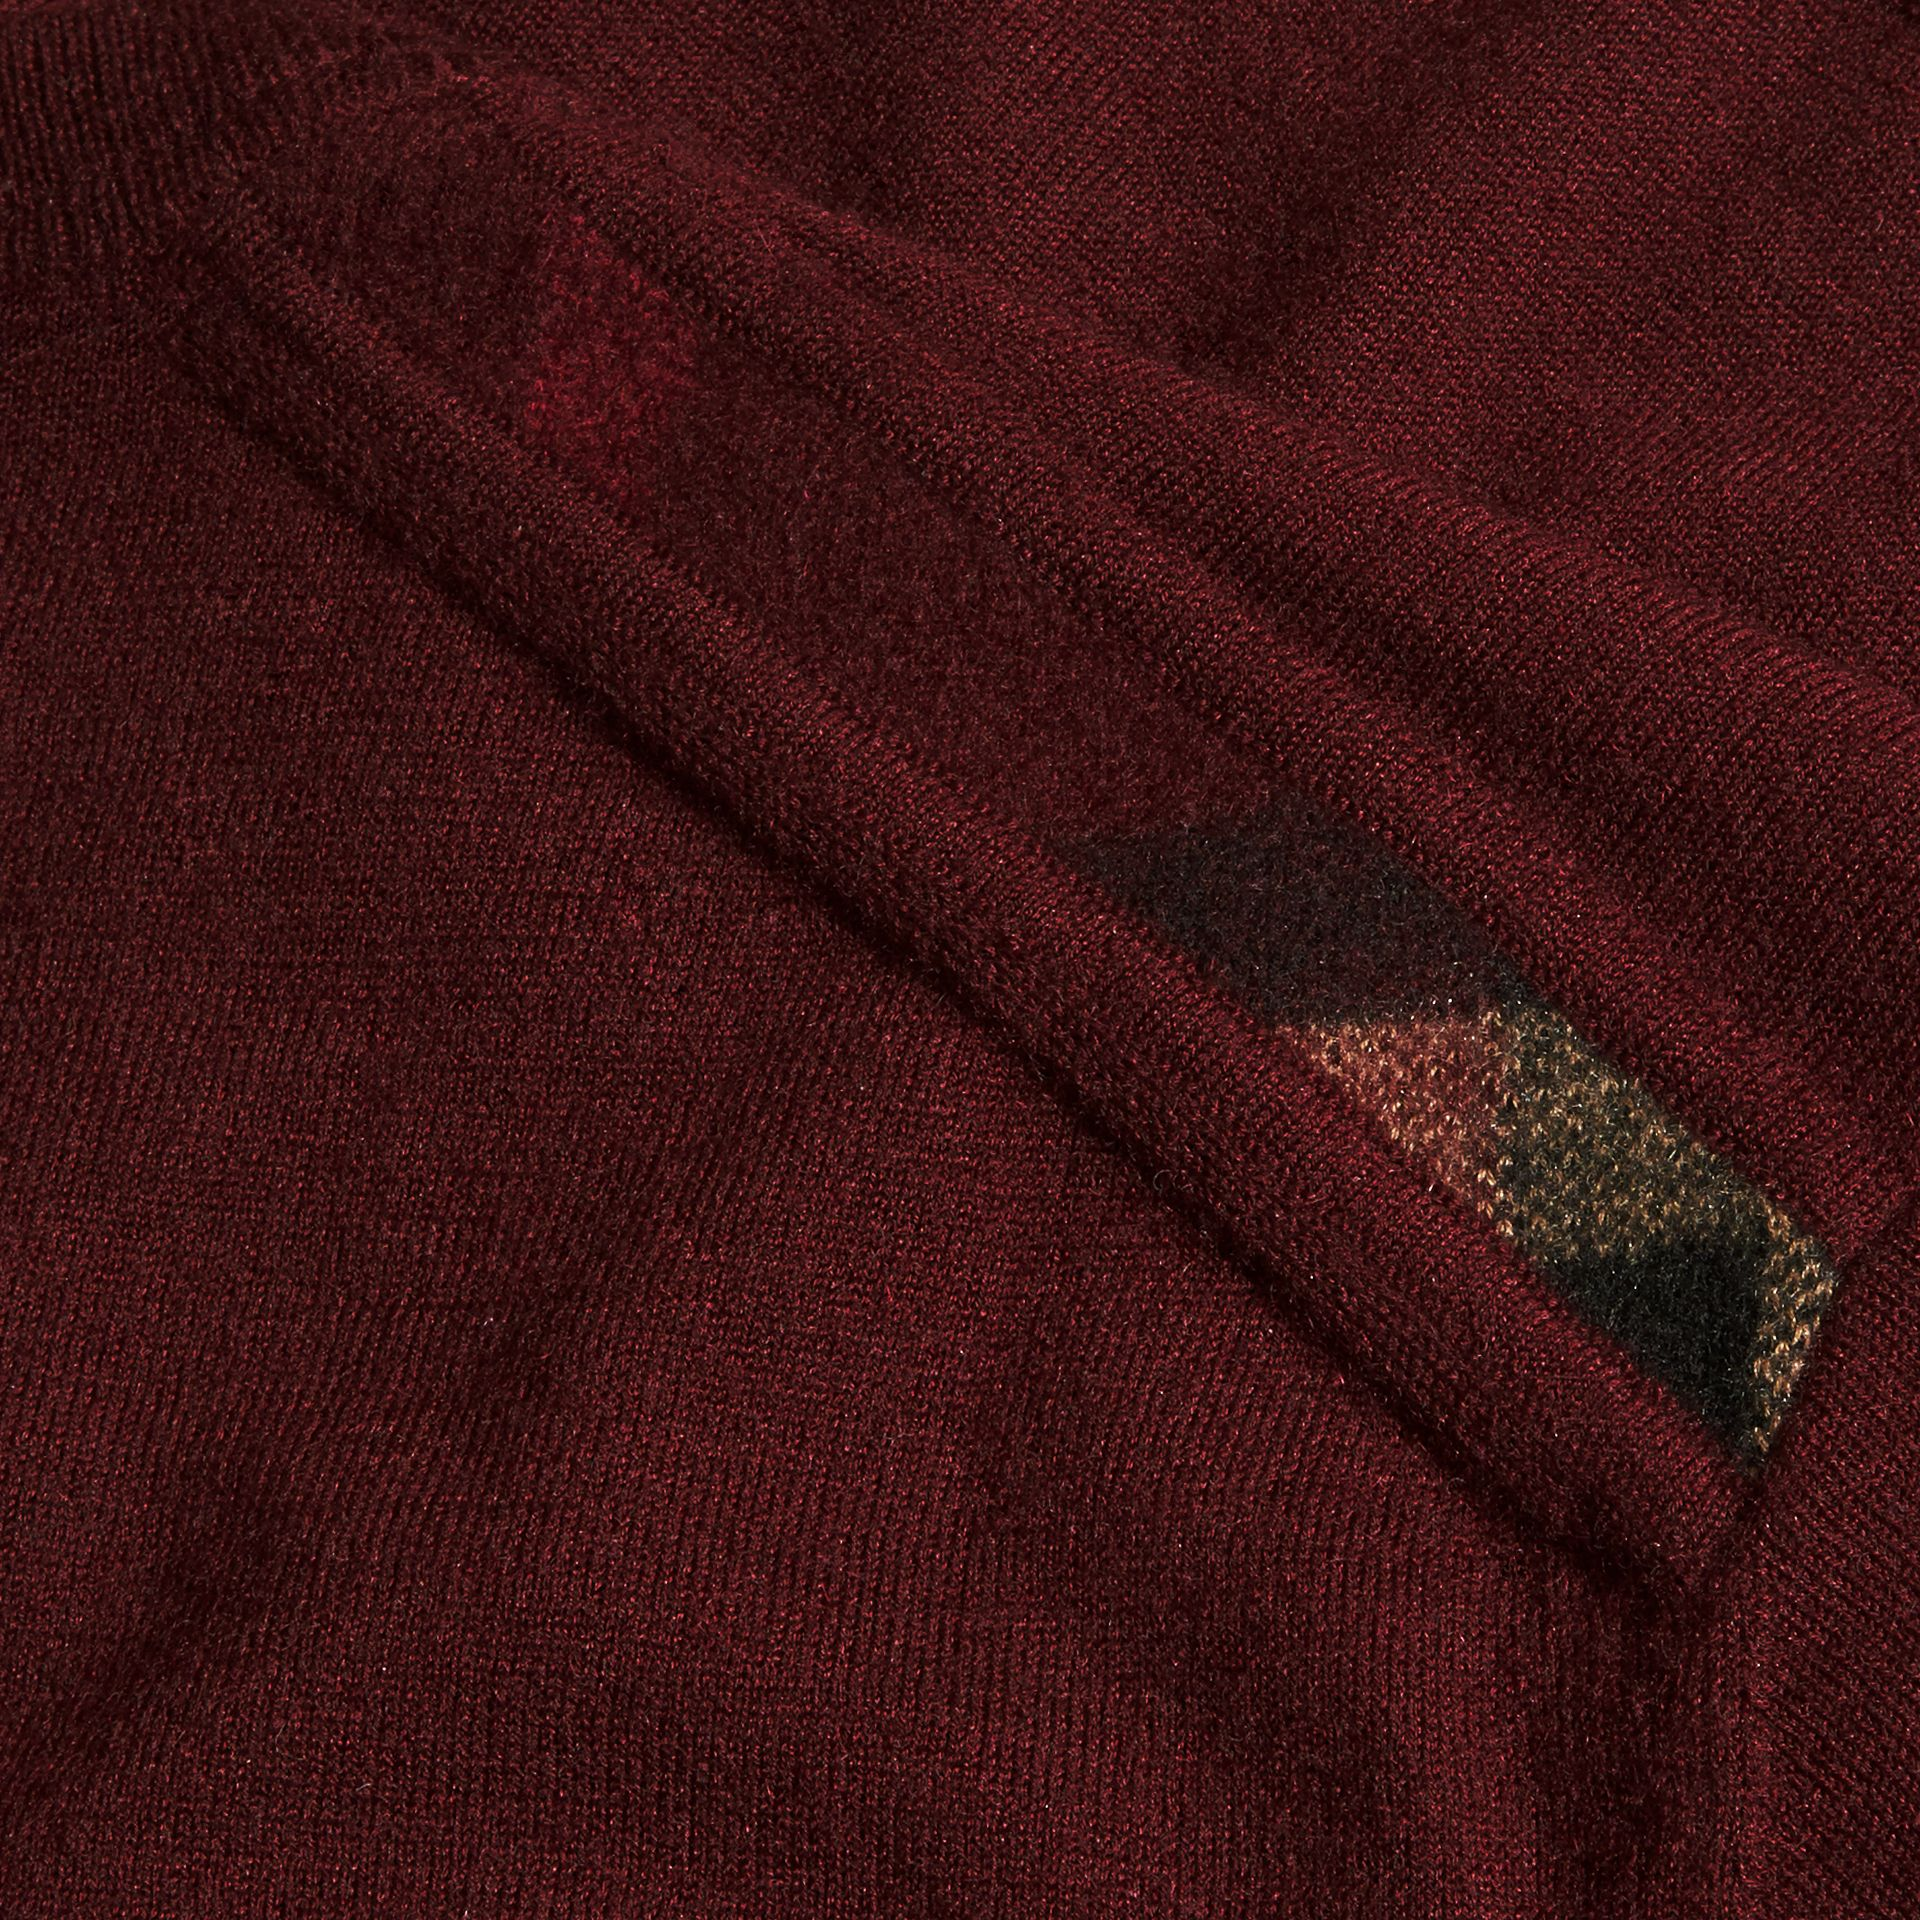 Lightweight Crew Neck Cashmere Sweater with Check Trim in Deep Claret - Men | Burberry Australia - gallery image 2